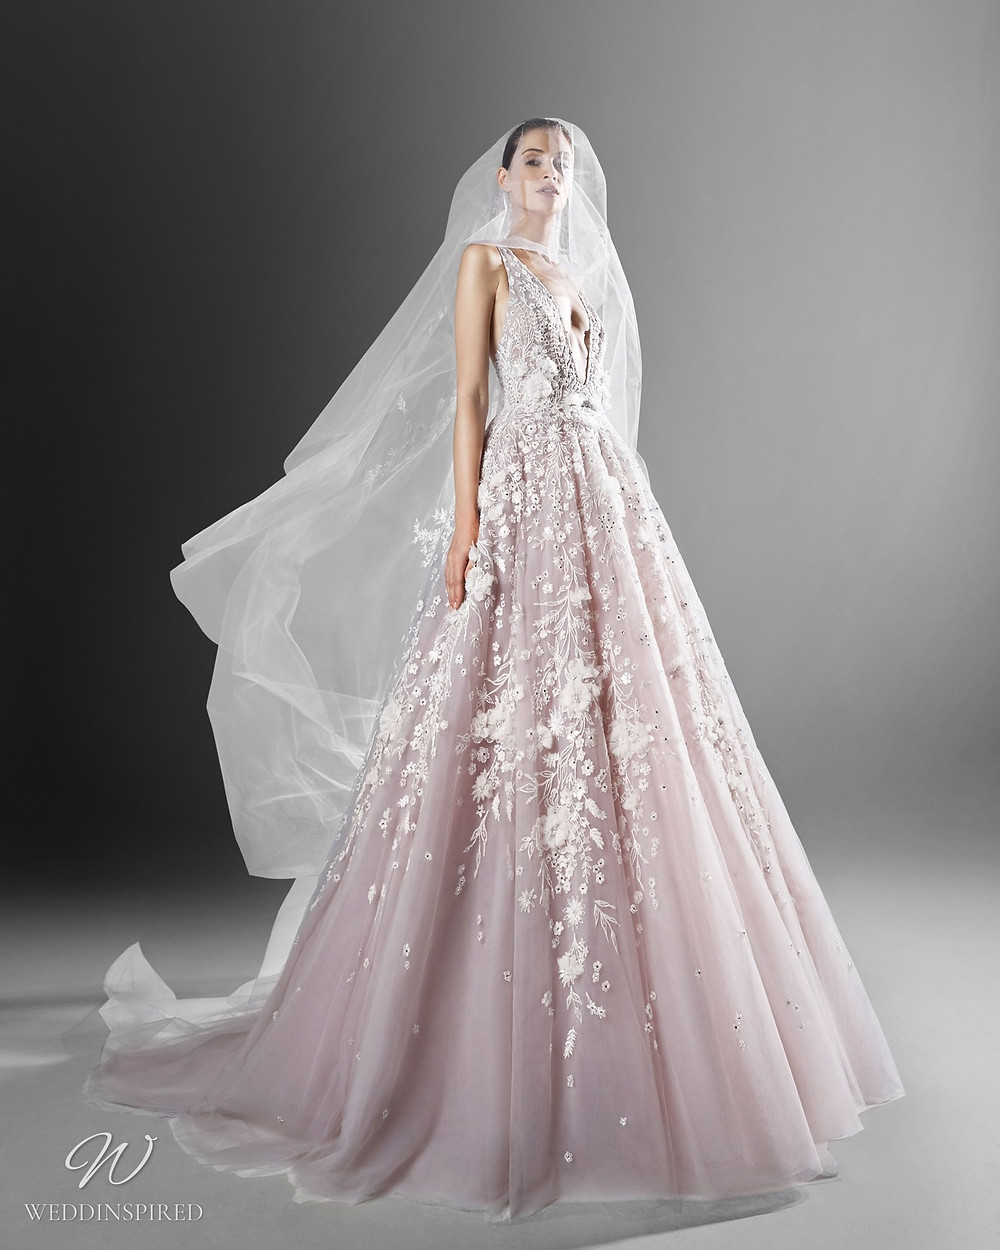 A Zuhair Murad romantic blush princess ball gown wedding dress with a tulle skirt, flowers and a veil